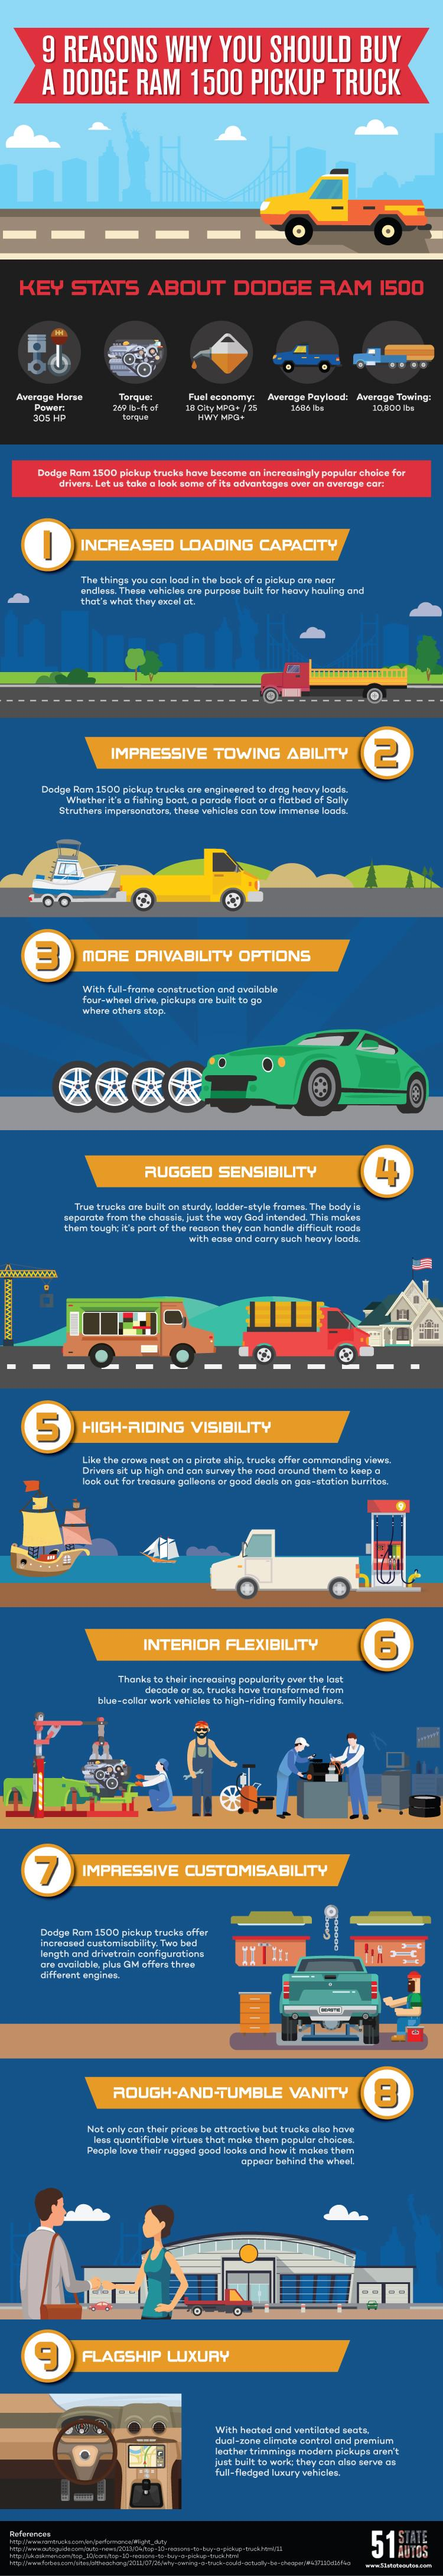 dodge-ram-1500-infographic-truck-history-design